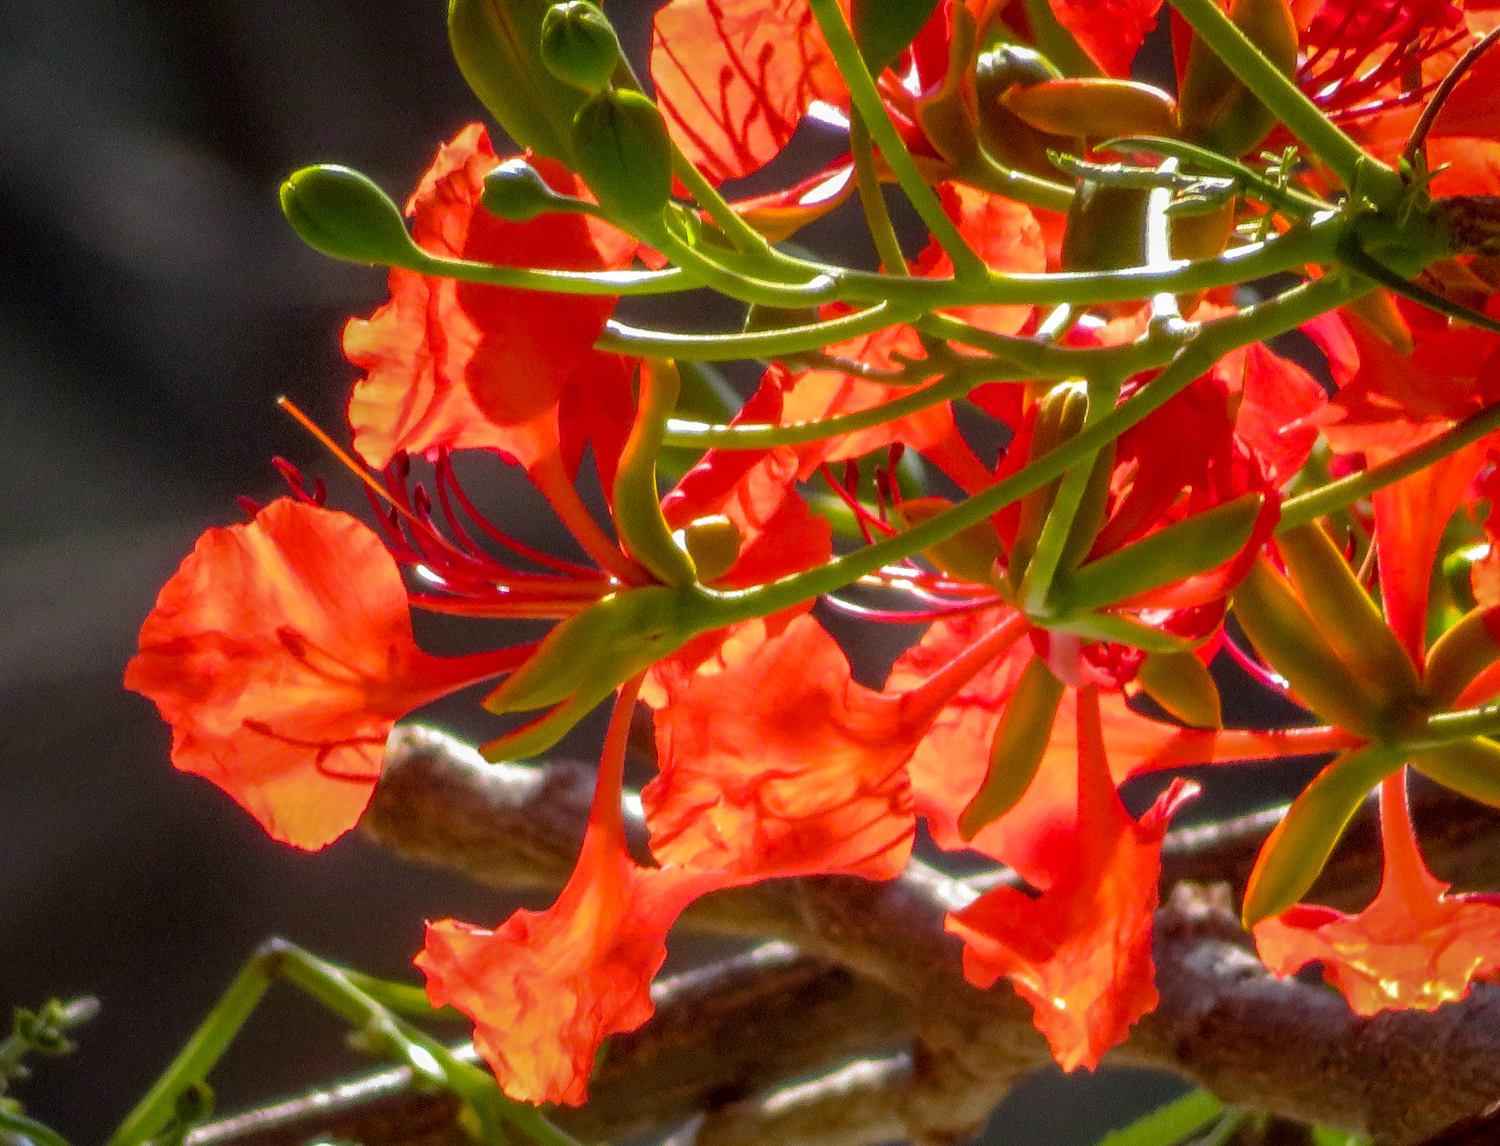 Oaxaca flowers and trees y knot blog flame tree close up they made the courtyard glow mightylinksfo